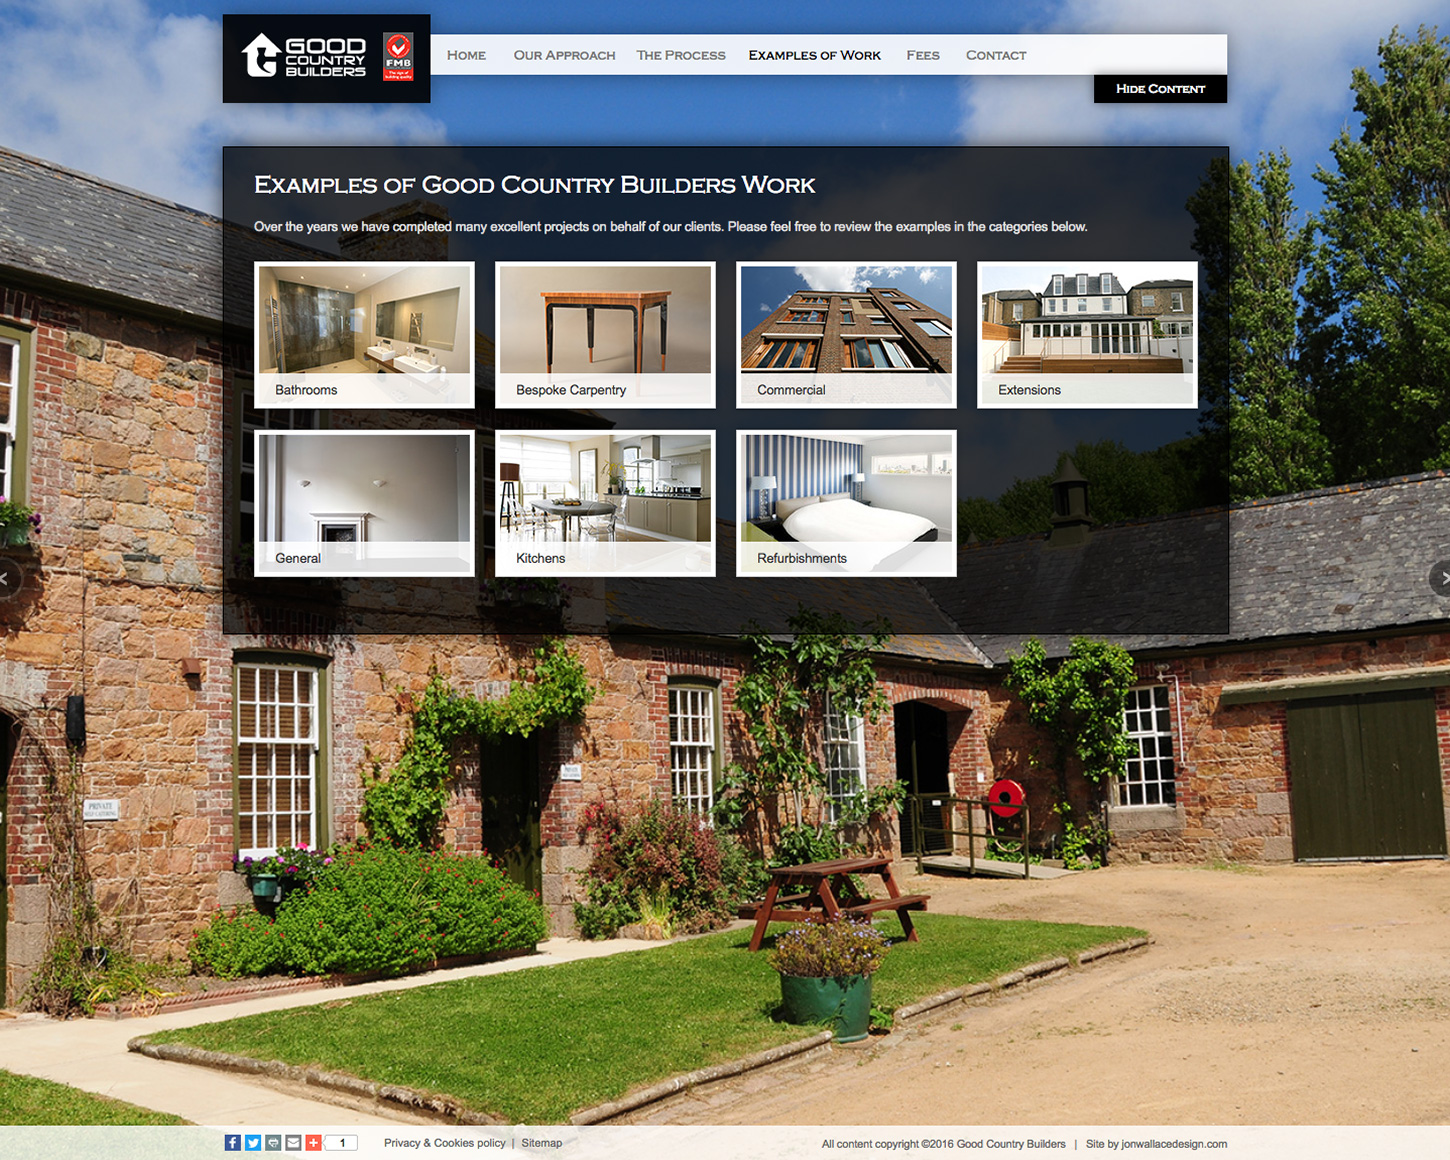 Good Country Builders website